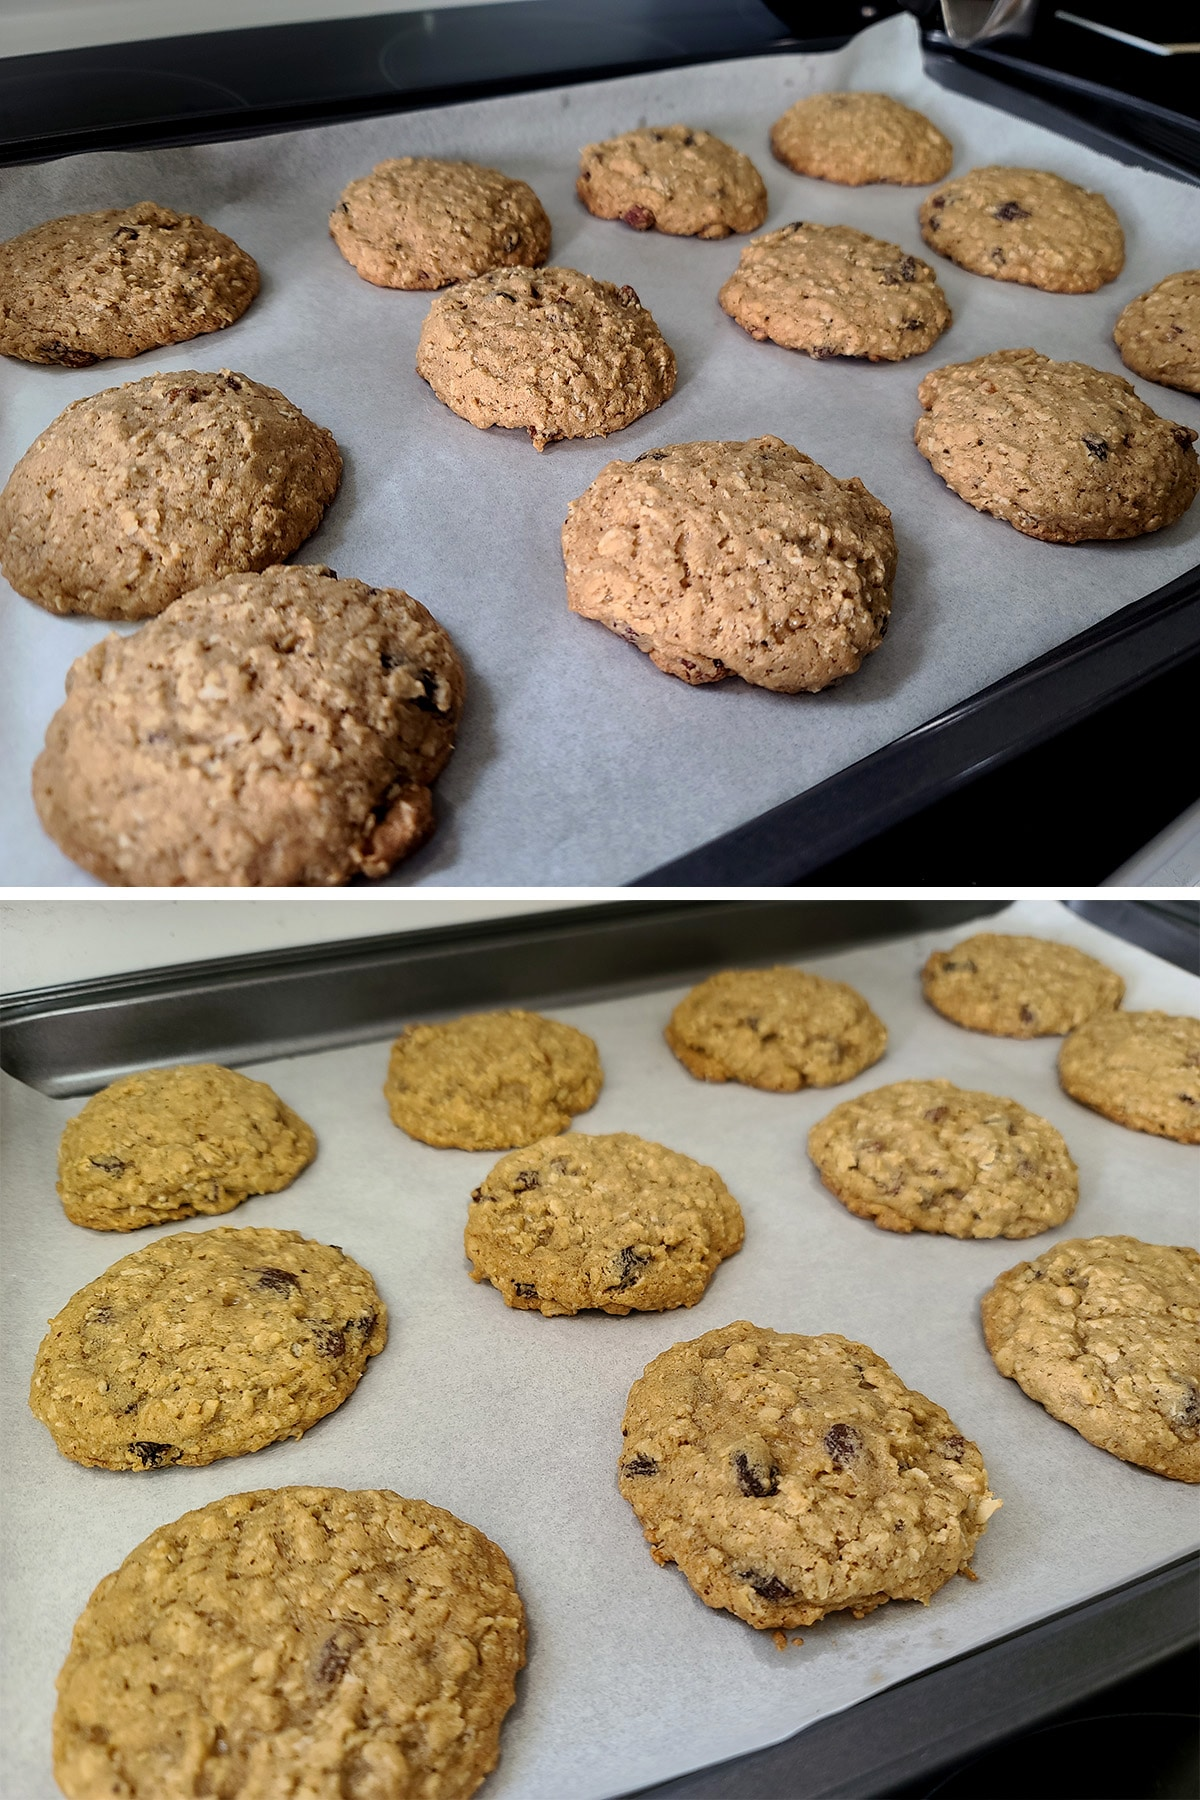 Baked cookies on a tray, before and after they've flattened a bit from cooling.